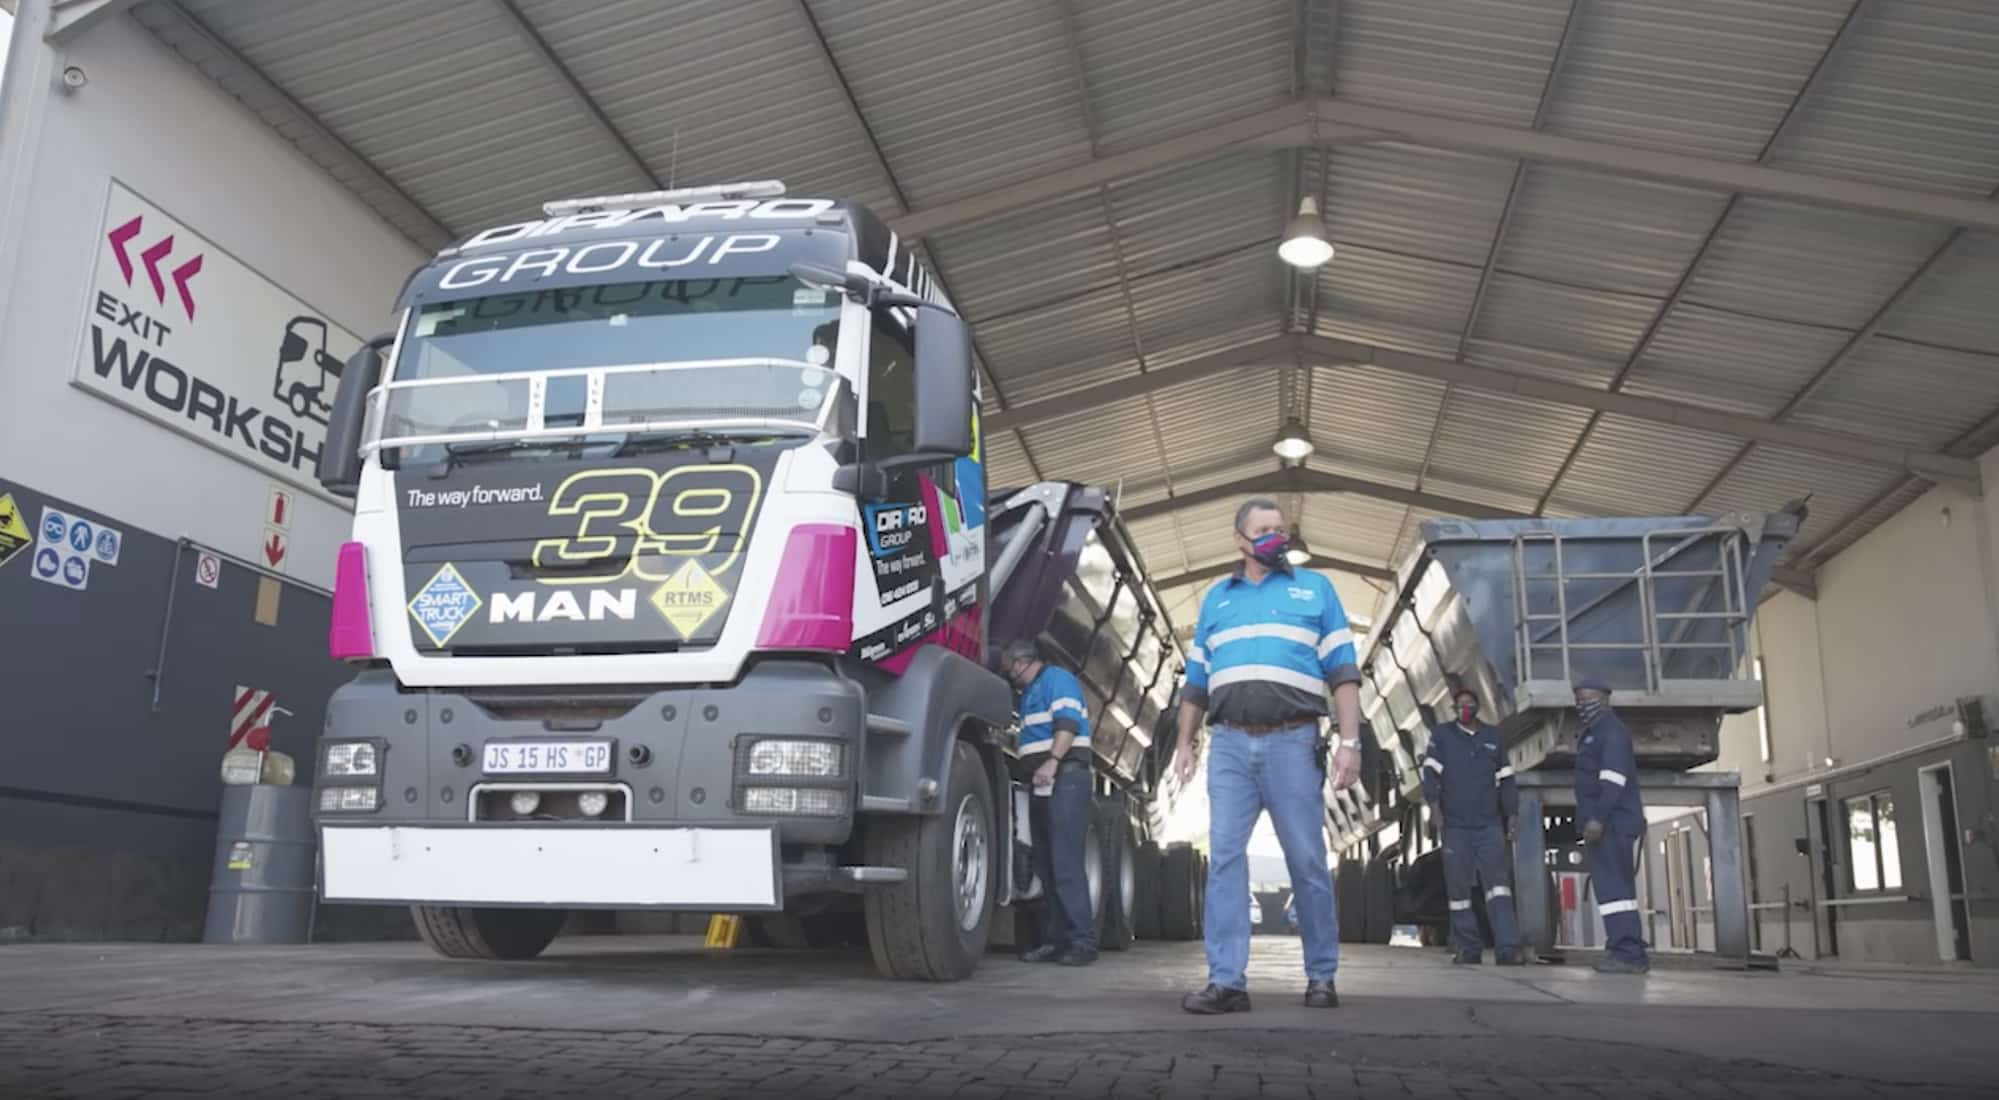 Louw Riekert from logistics company Diraro stands in front of the company's Man Truck with his team in the background.